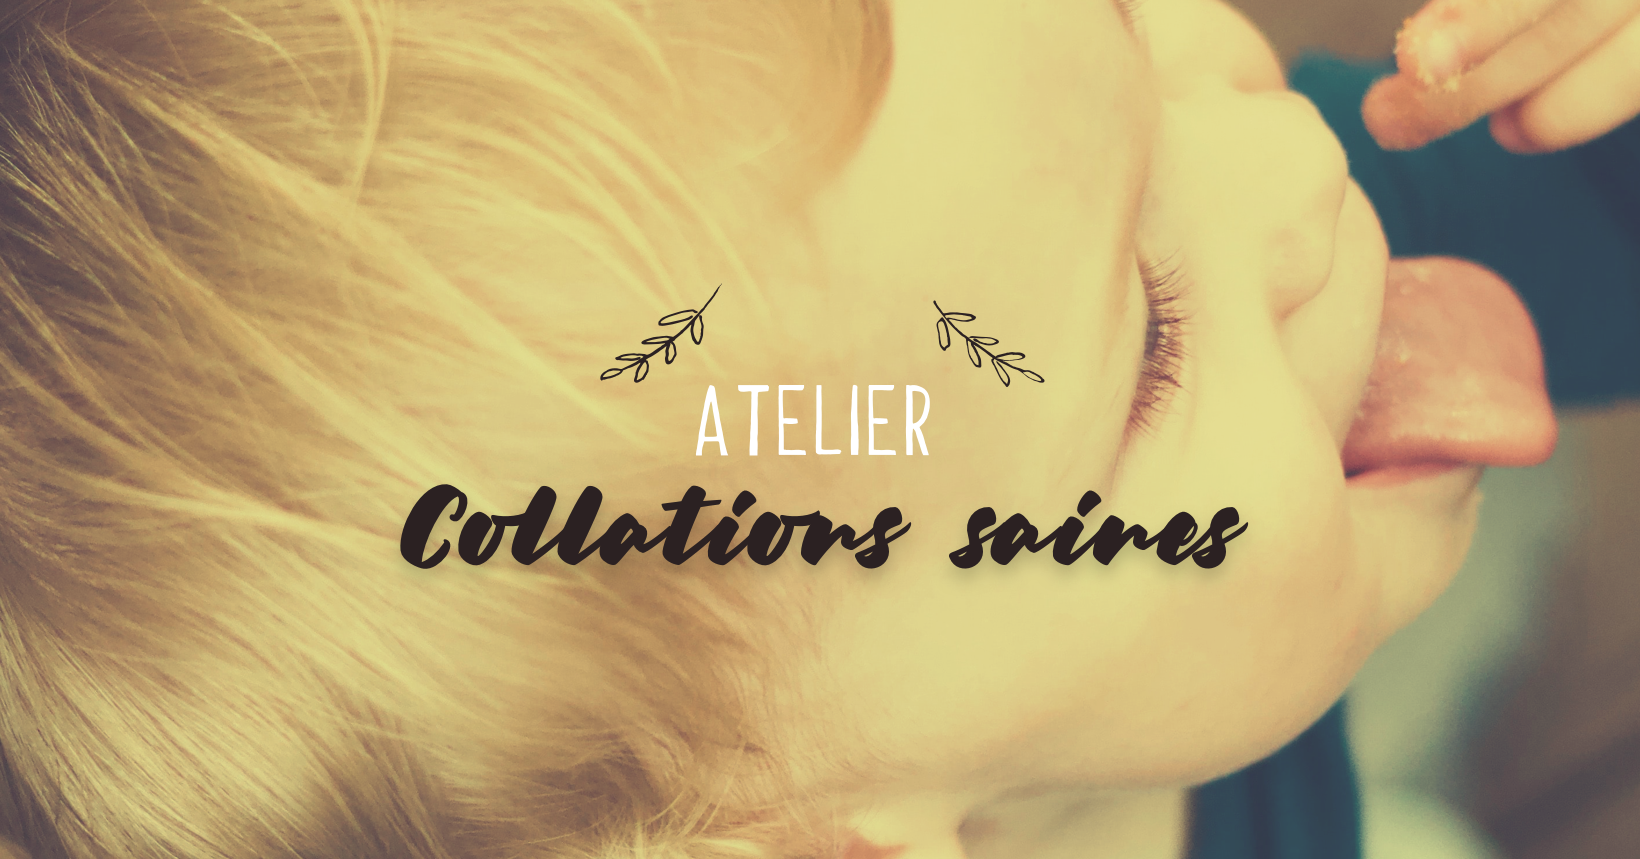 Atelier collations saines